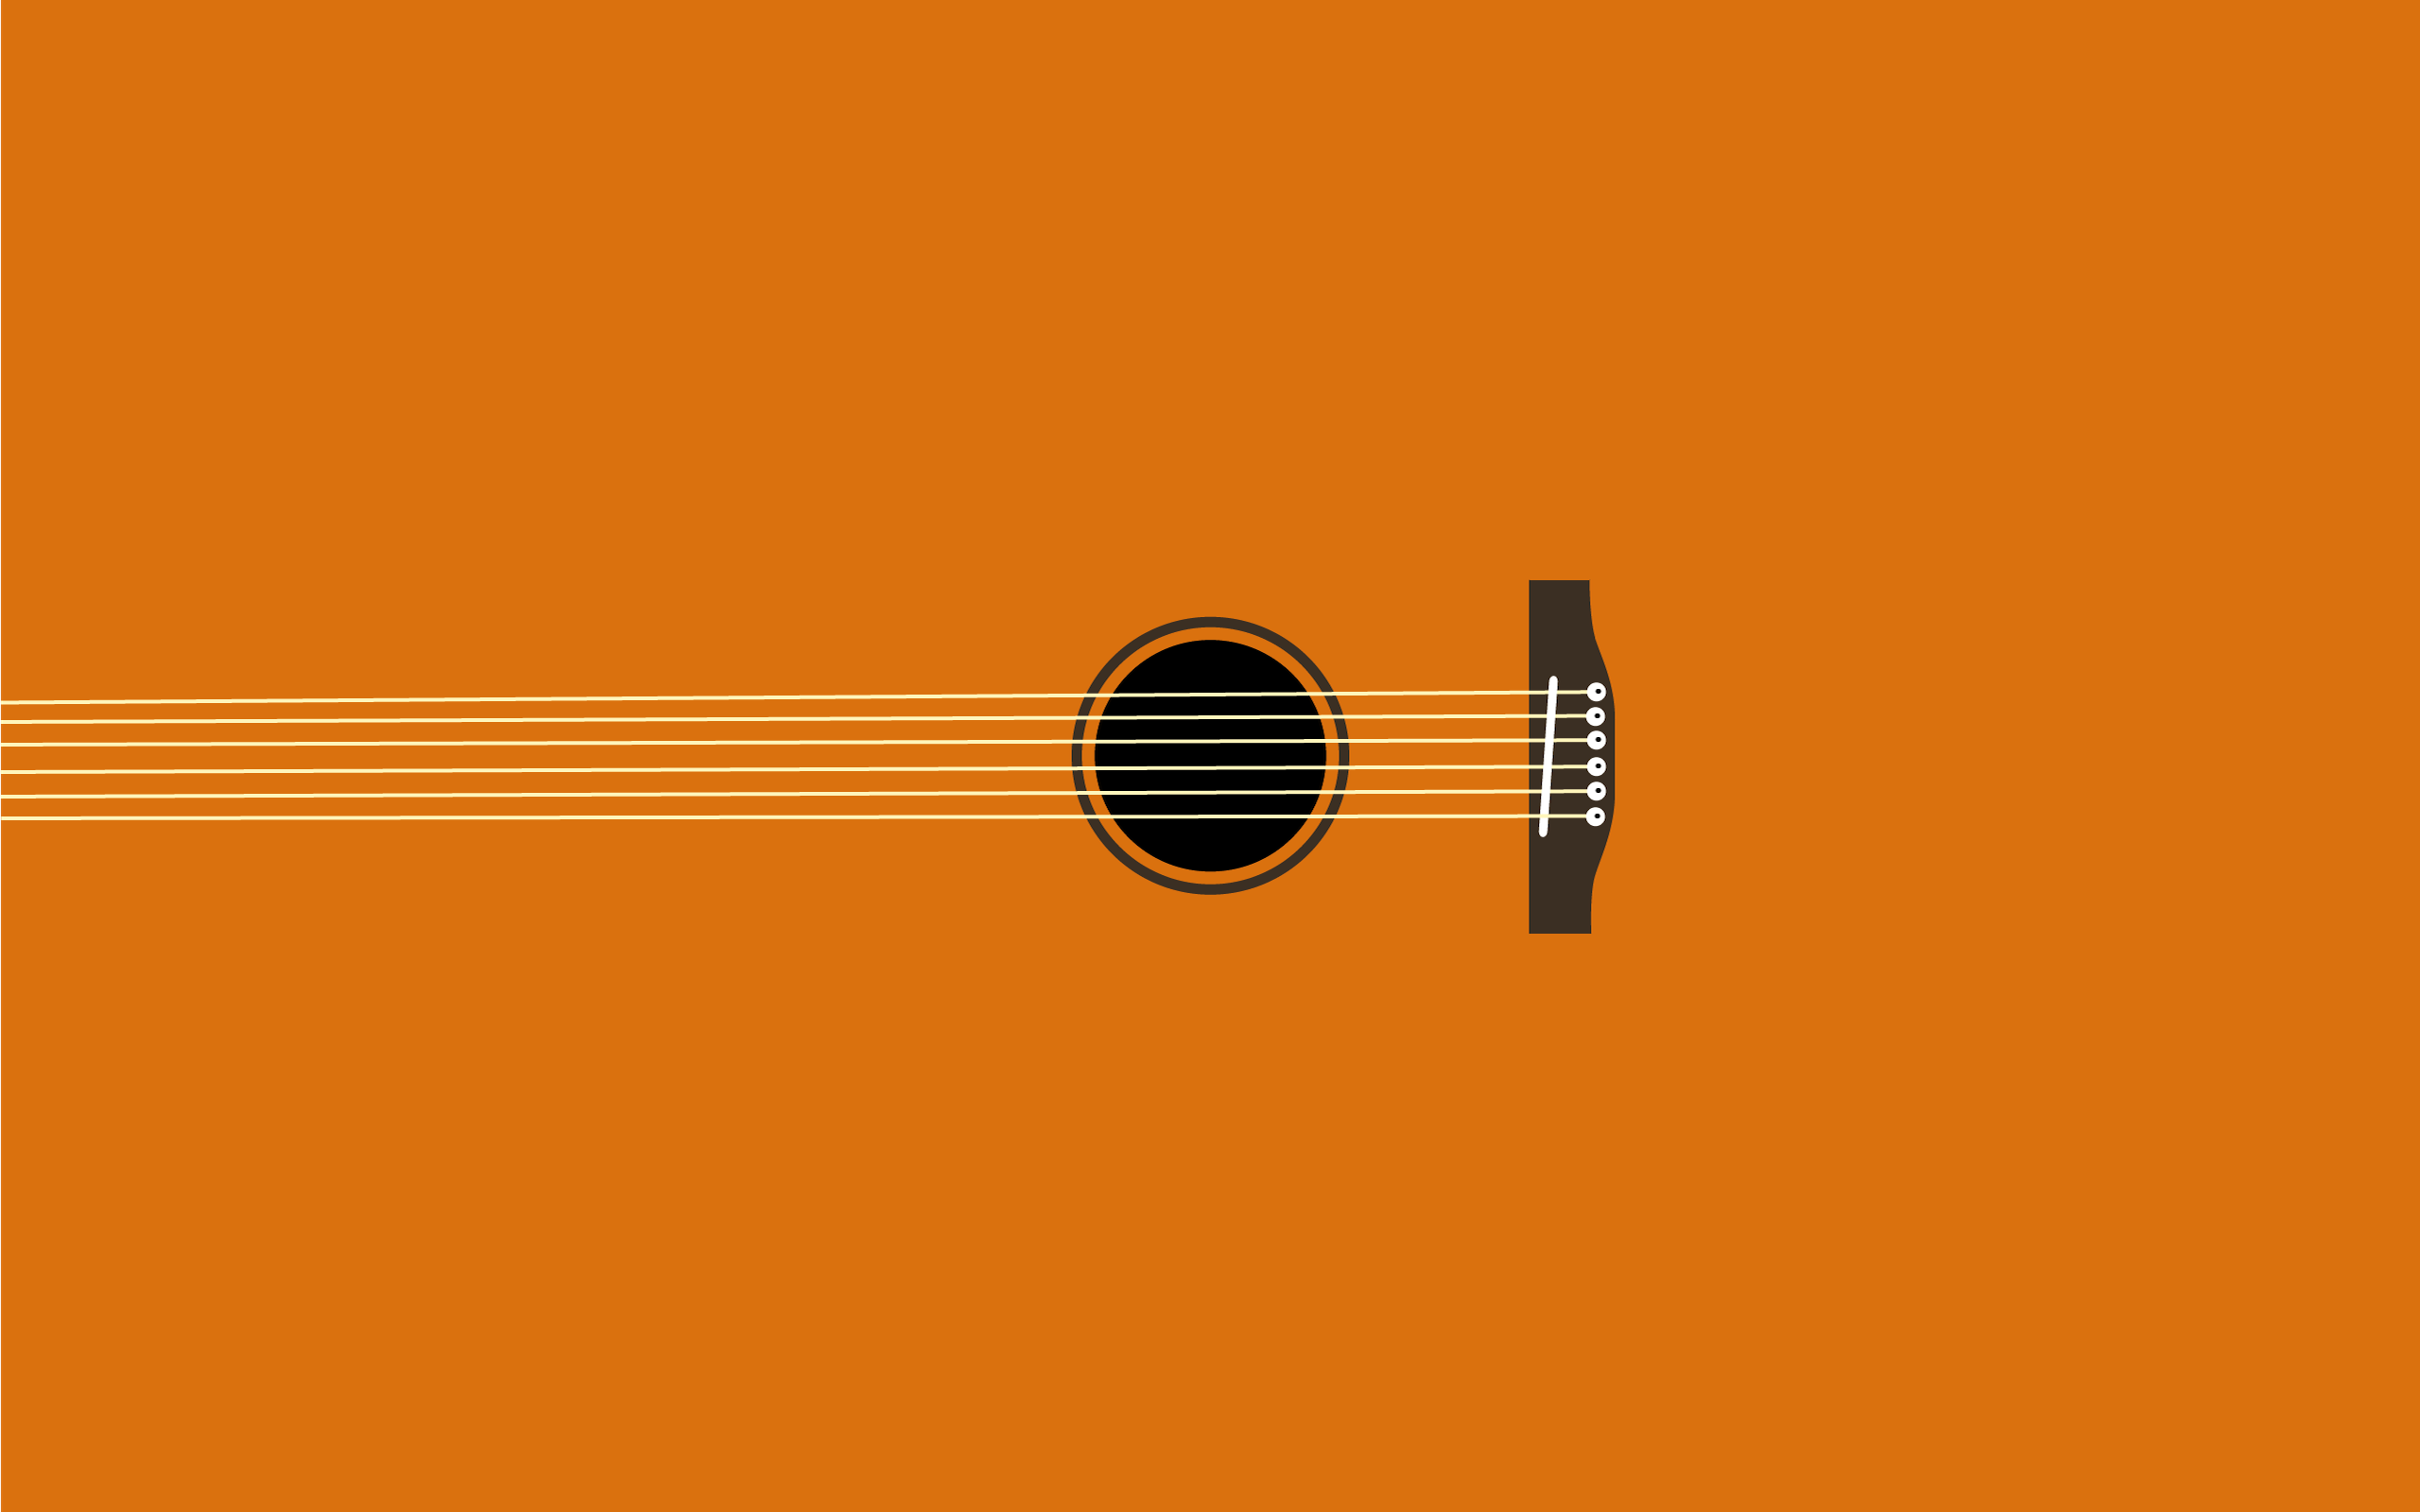 Acoustic Wallpaper